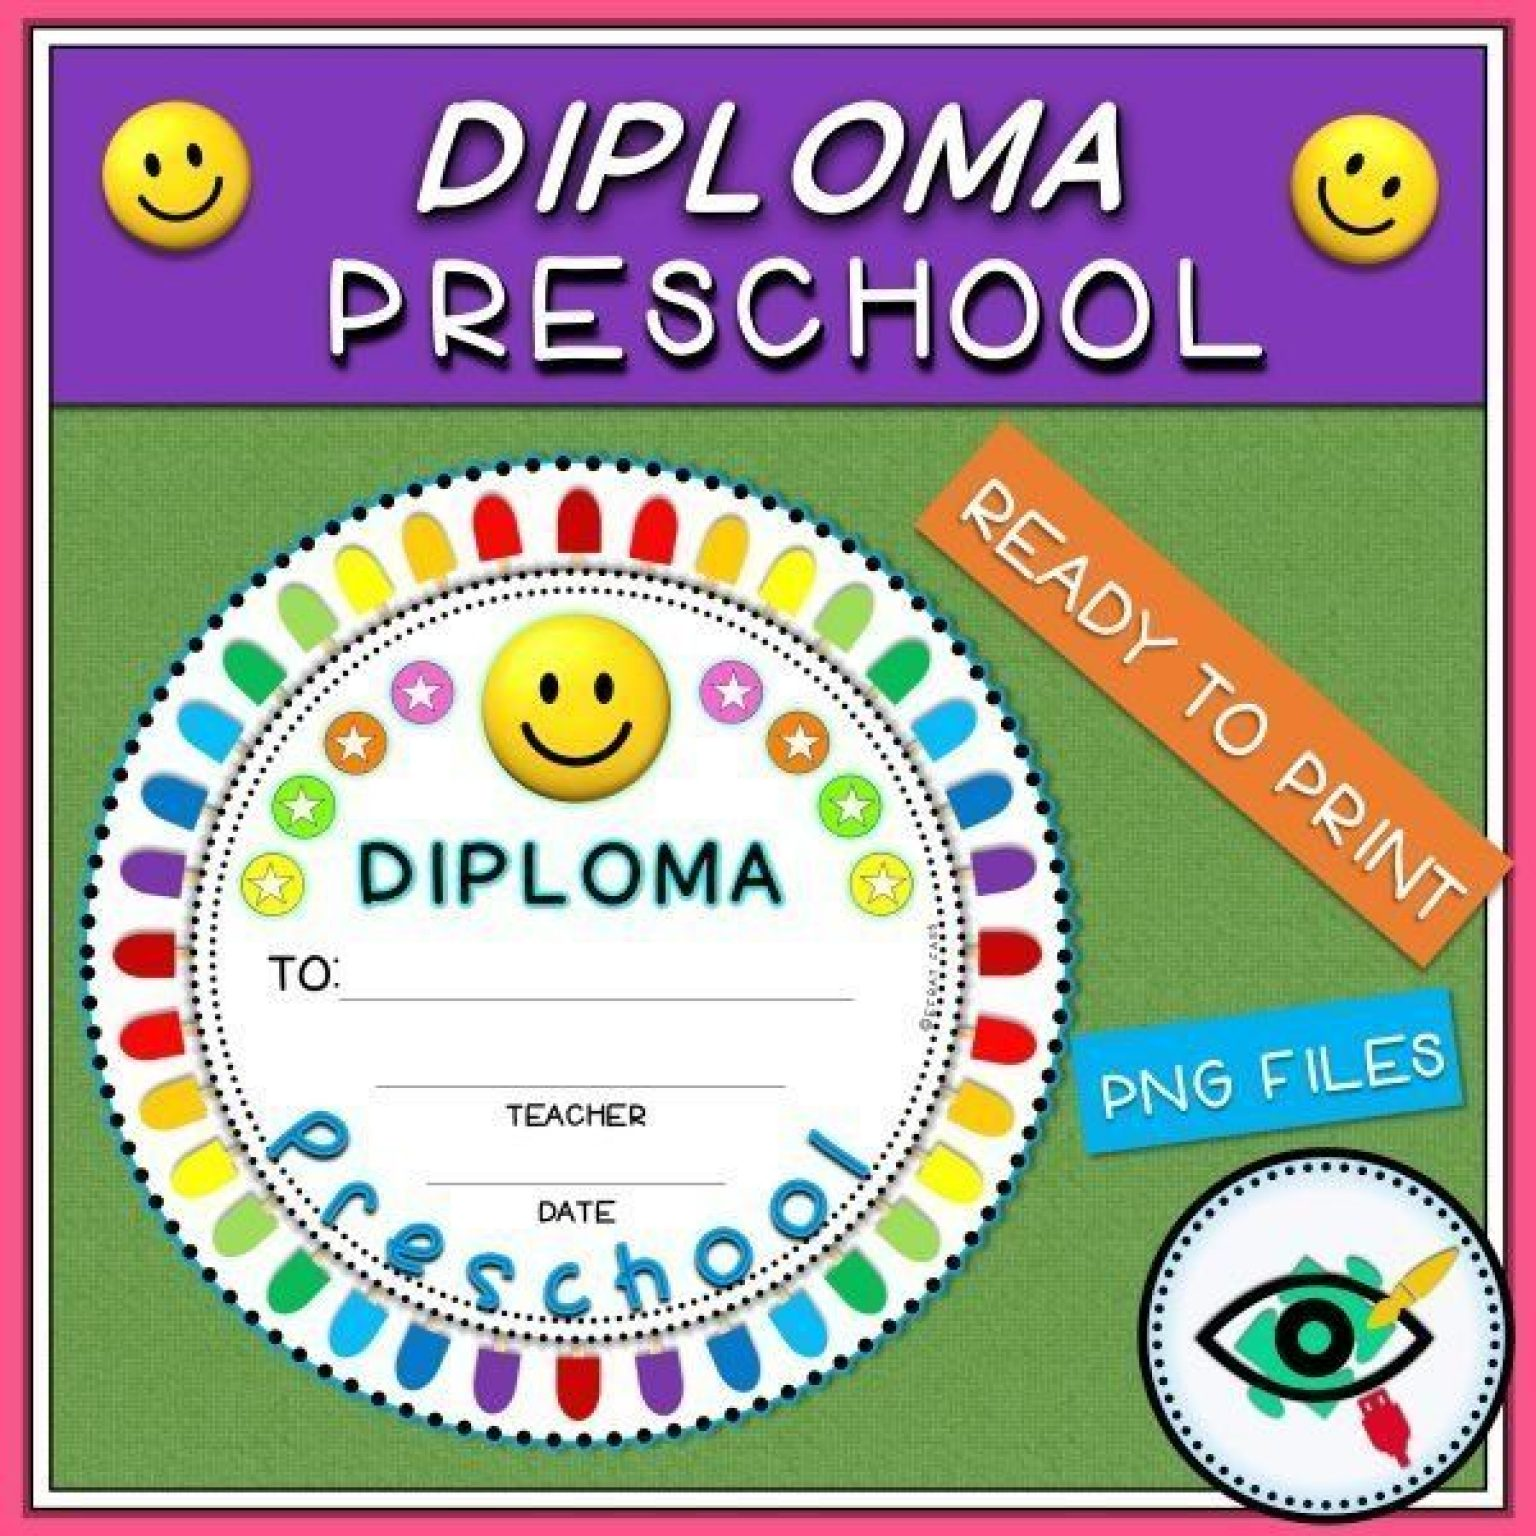 end-of-year-rounded-diploma-preschool-title1